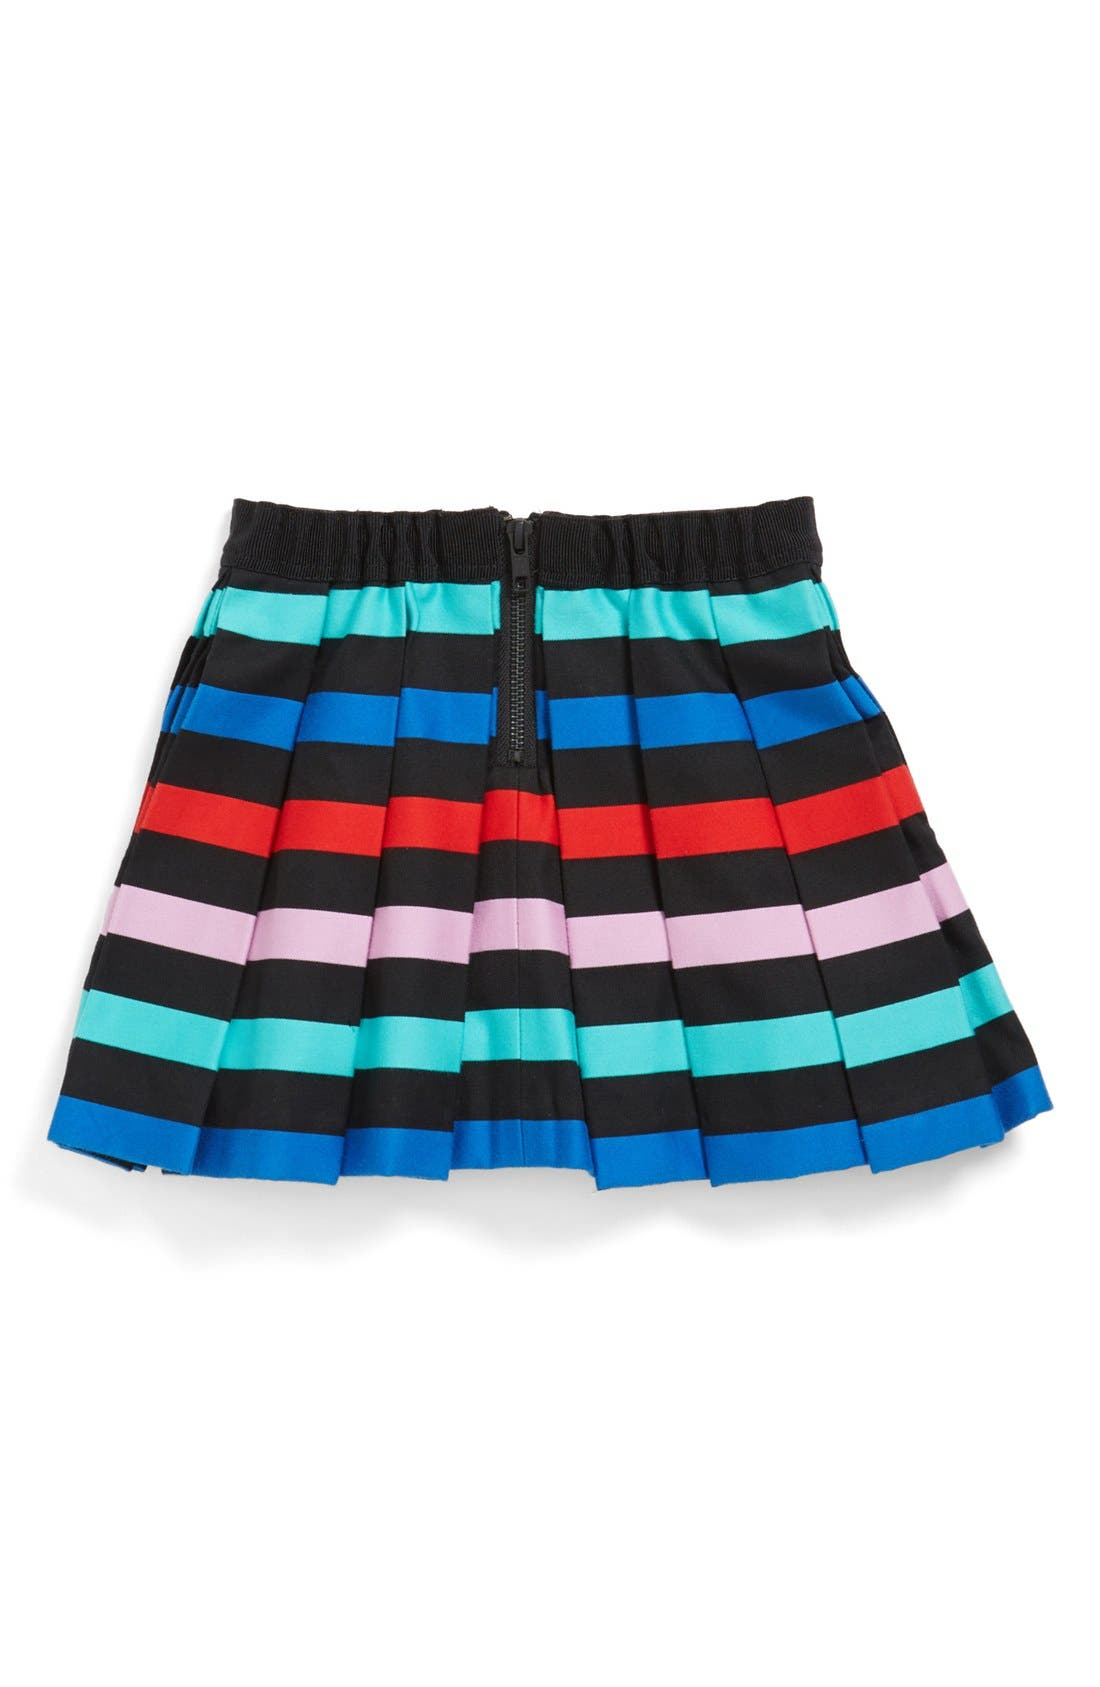 Alternate Image 2  - Milly Minis Pleated Skirt (Toddler Girls, Little Girls & Big Girls)